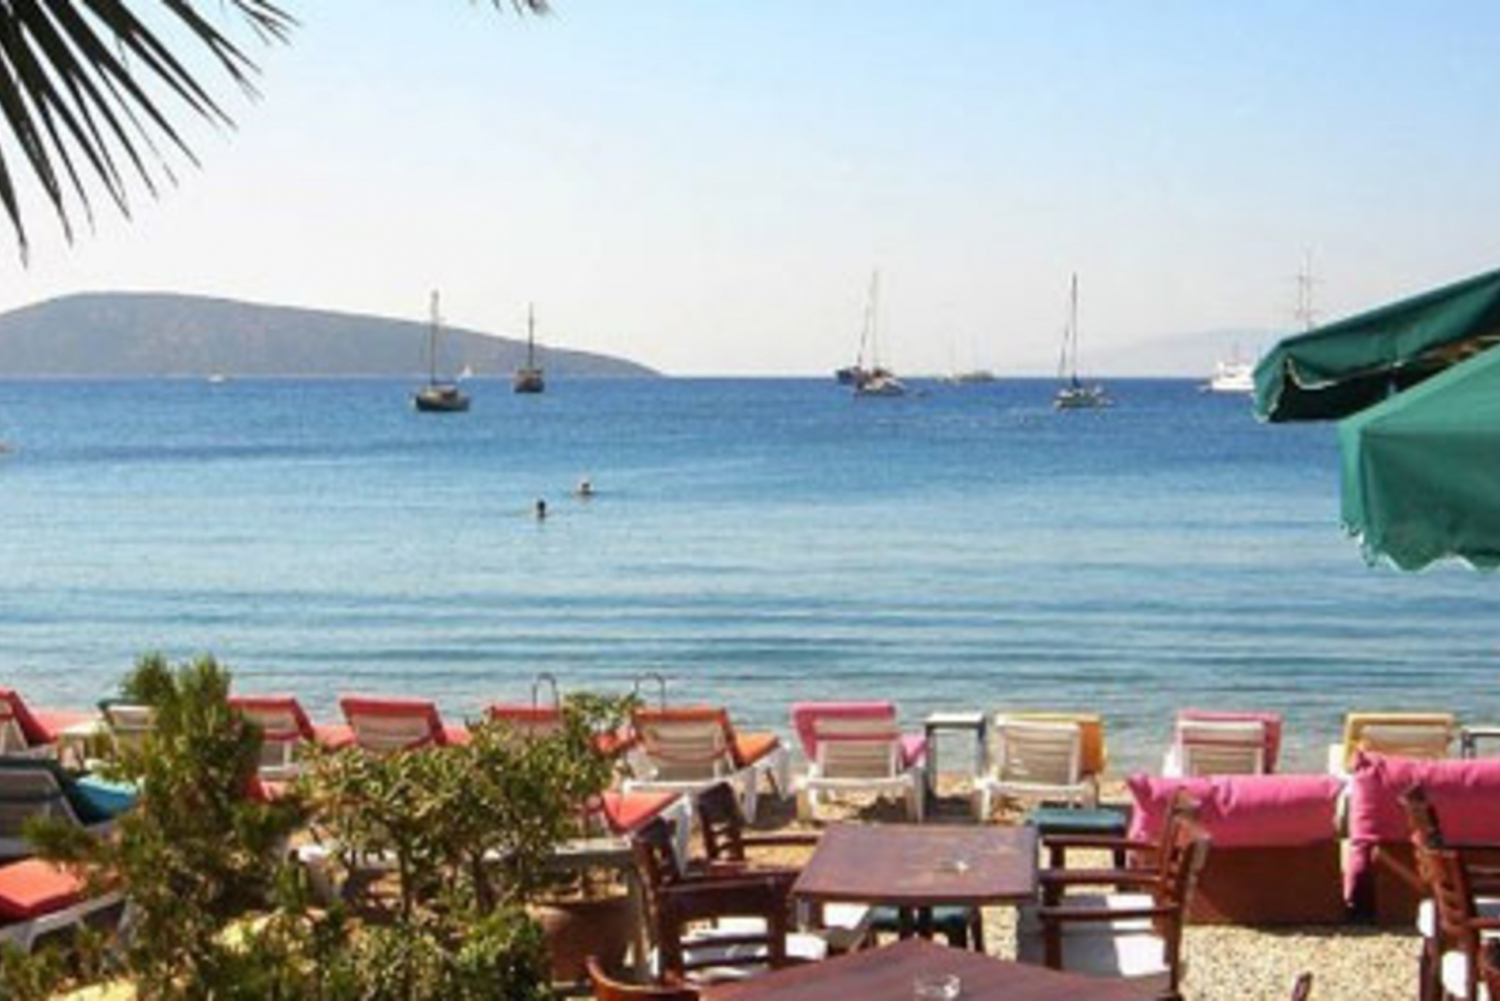 5-Day Package Tour of Bodrum